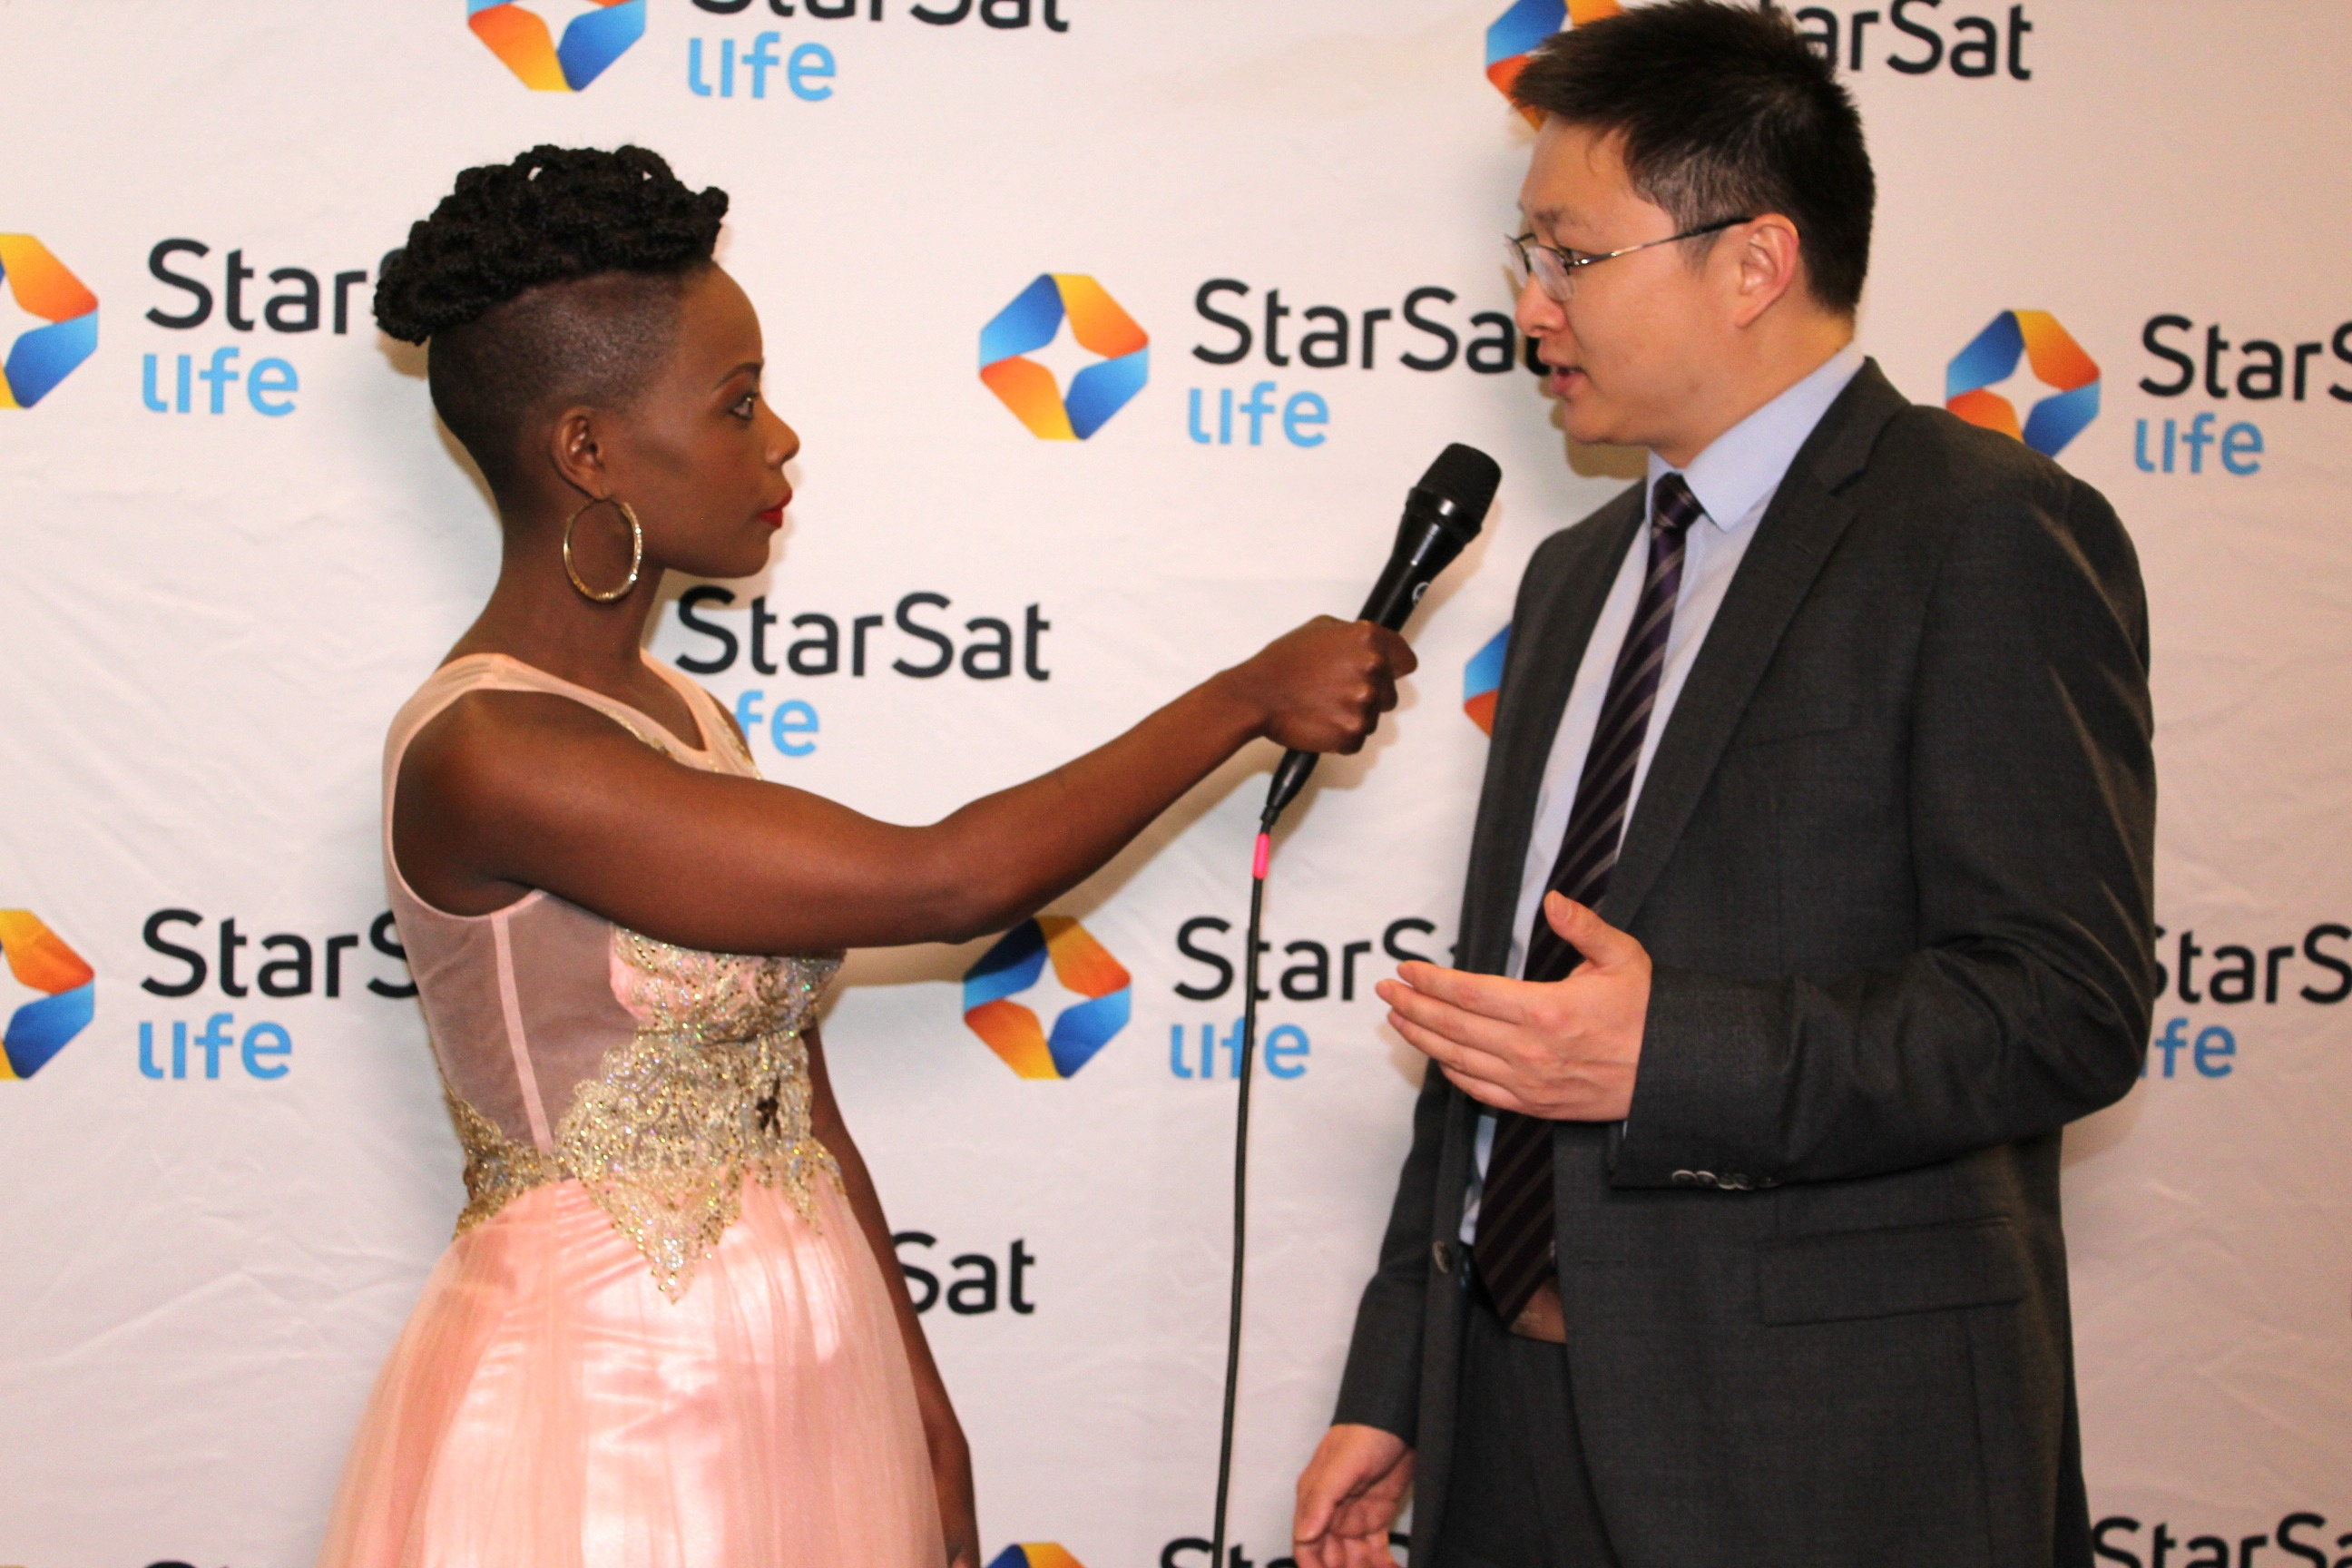 Startimes SA CEO-Life Launch